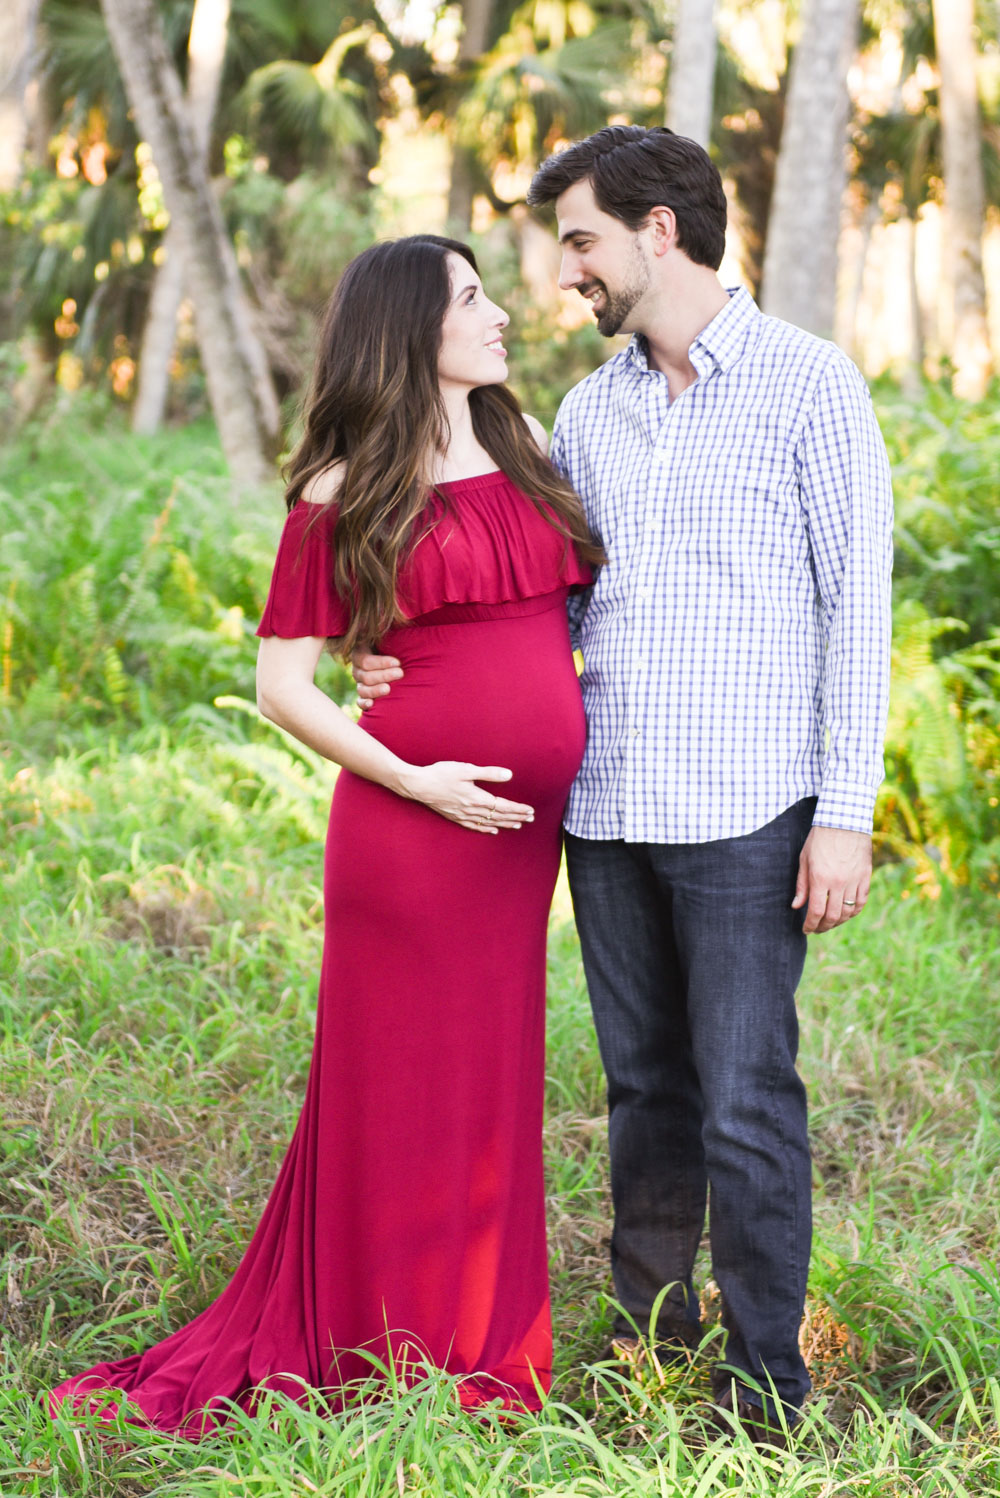 2018_02_18_Stephanie_Dave_Maternity_2.jpg